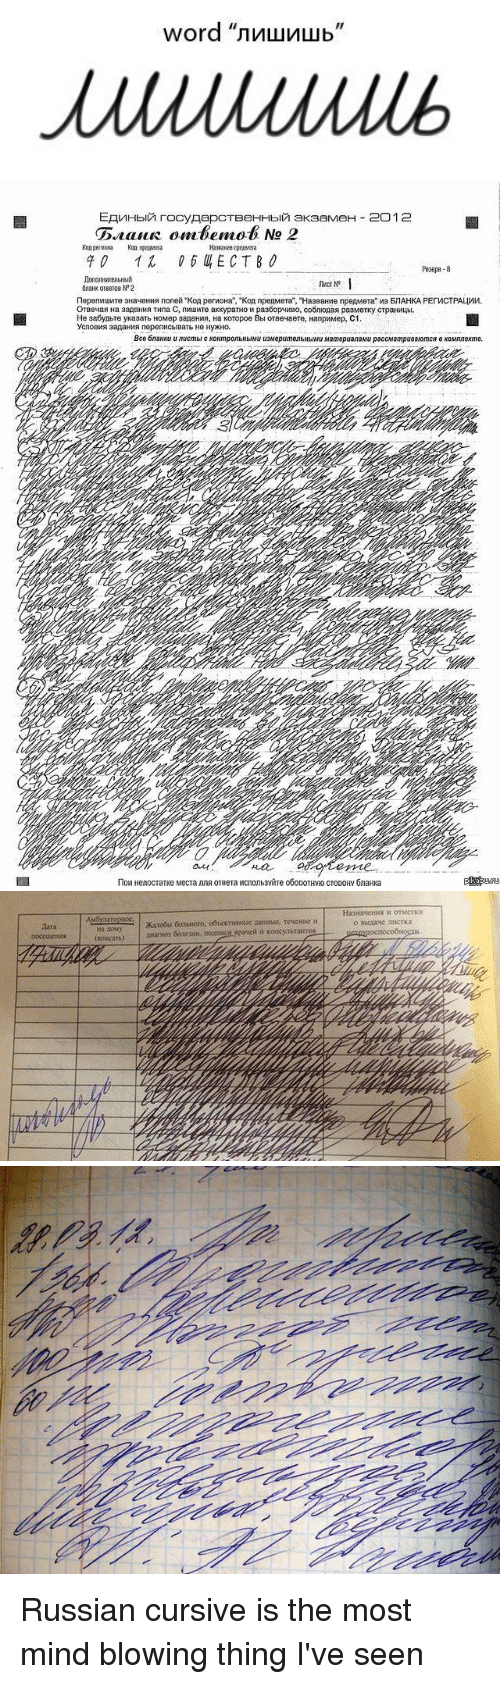 Russian Cursive Is the Most Mind Blowing Thing I've Seen How